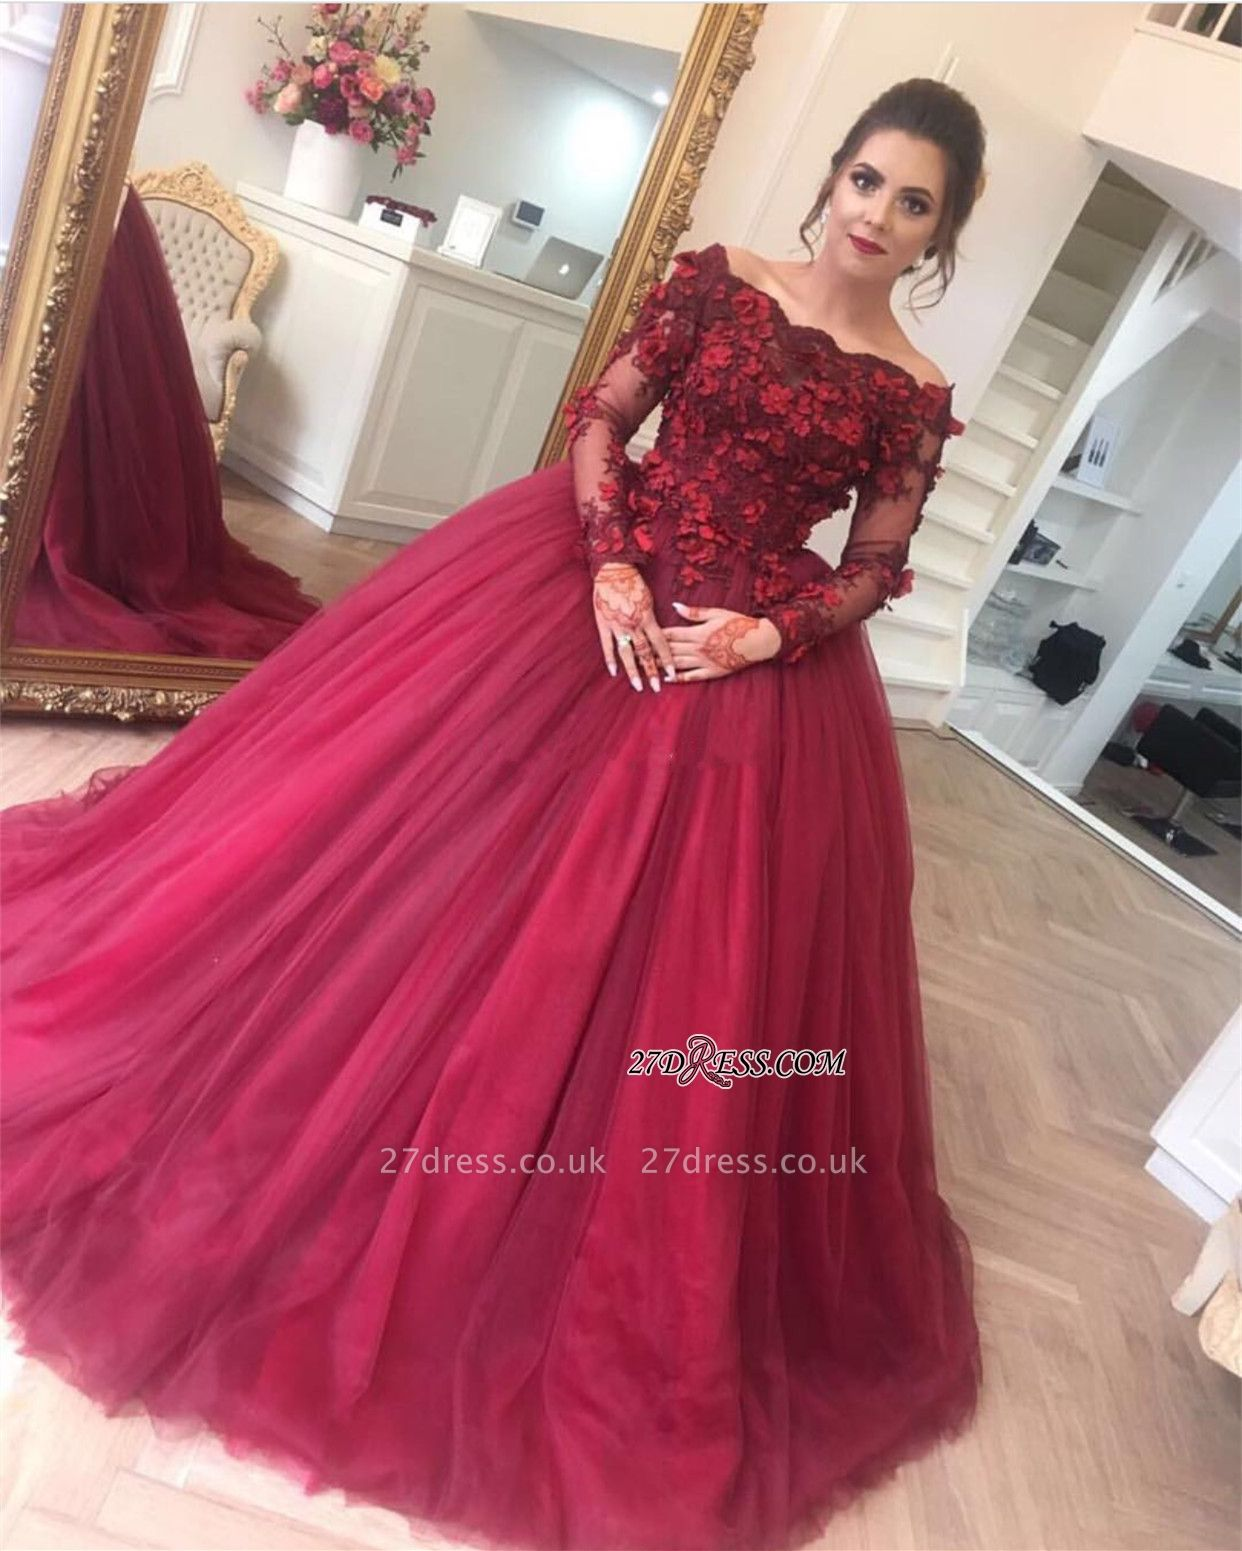 Luxury Ball Gown Applique Long Sleeve Burgundy Off-the-Shoulder Prom Dress UKes UK BA7967